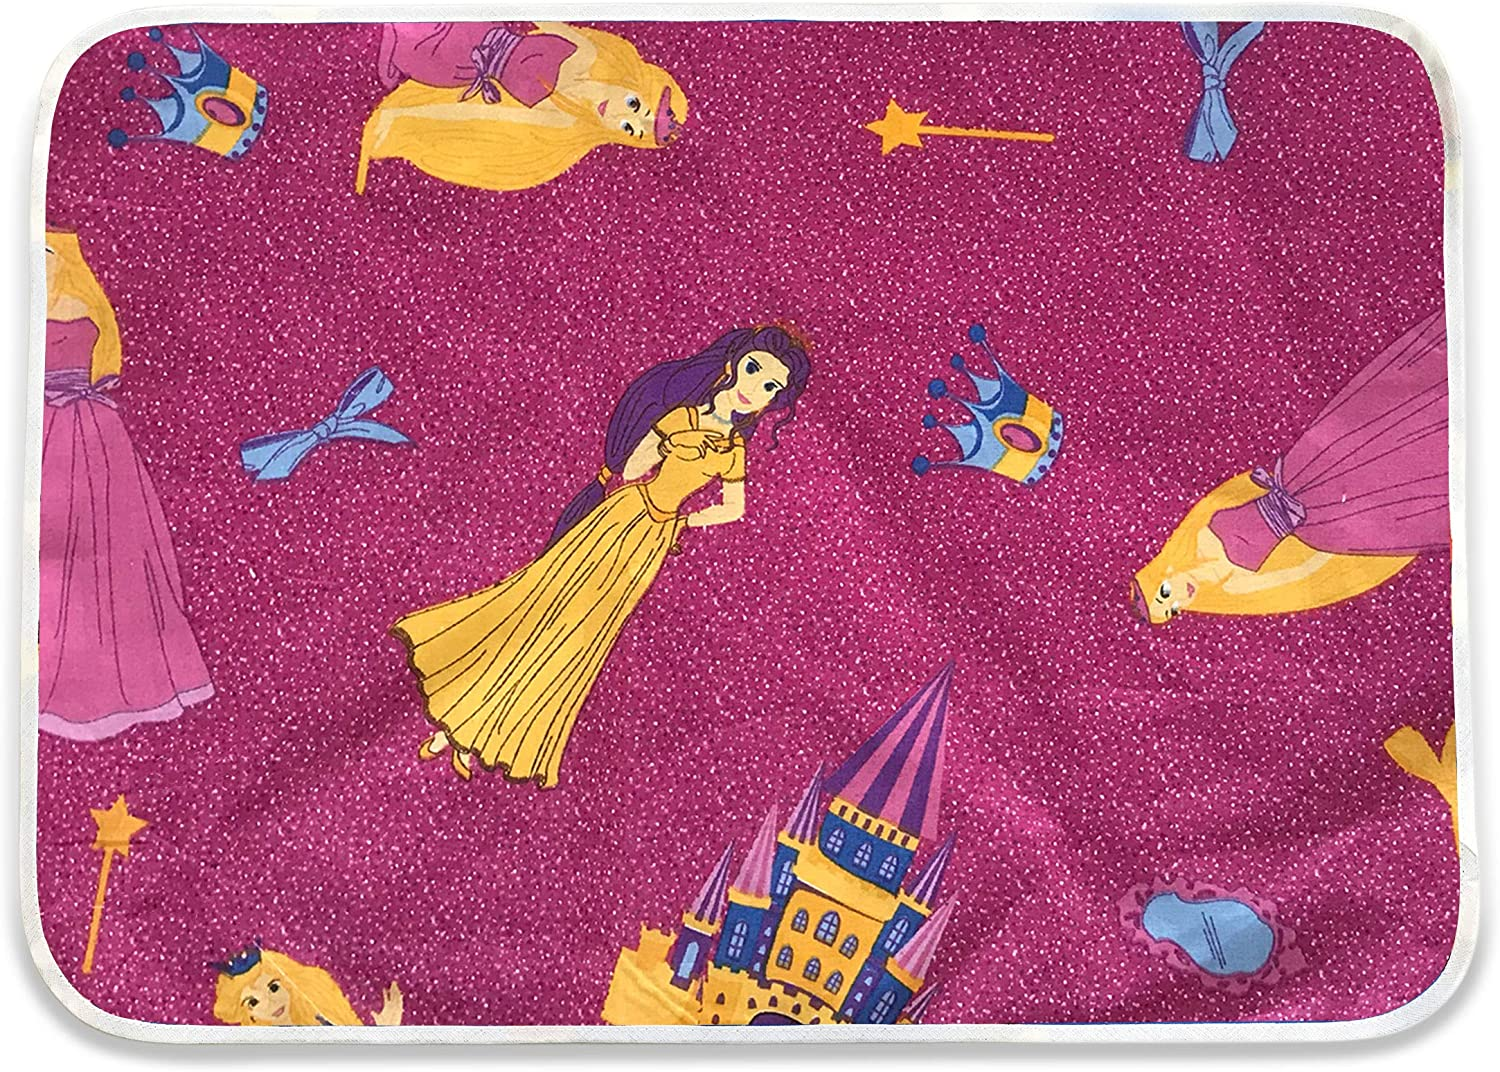 motifs Disney pour maternelle et jardin denfants Serviette de table 100/% coton oeko tex Made in Italy Tapis de table Set de table